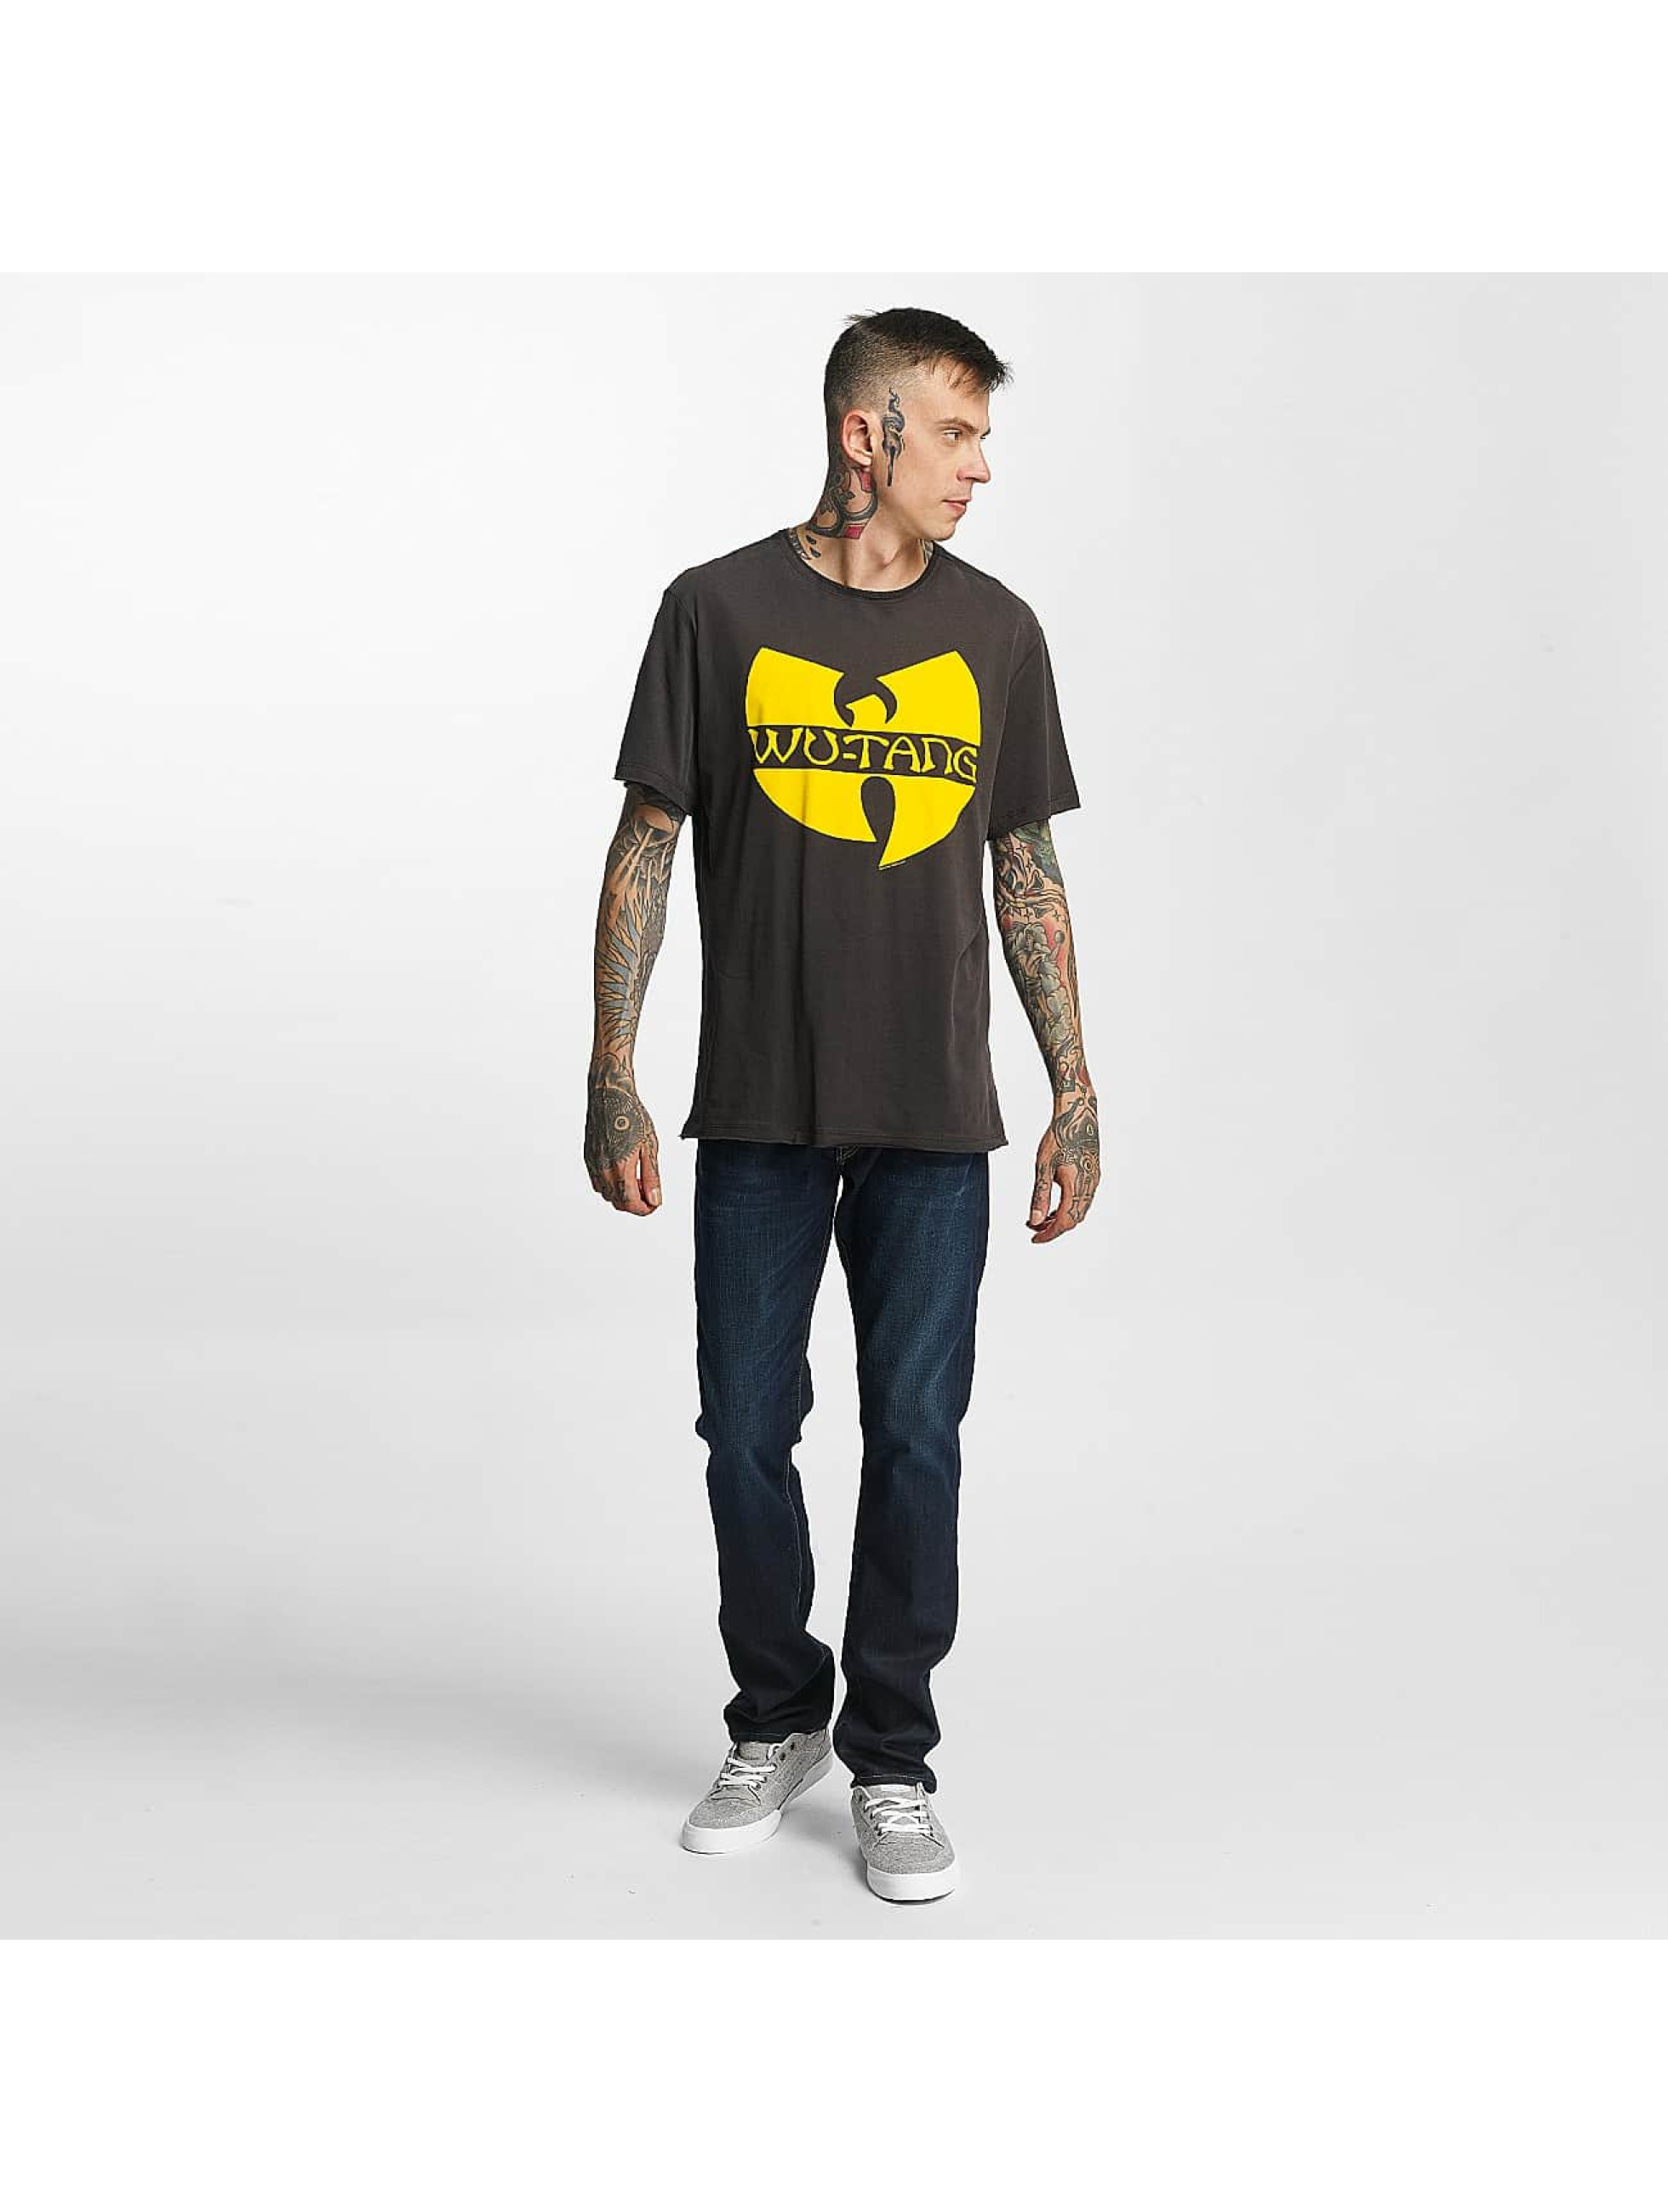 Amplified T-Shirt Wu Tang Logo grau